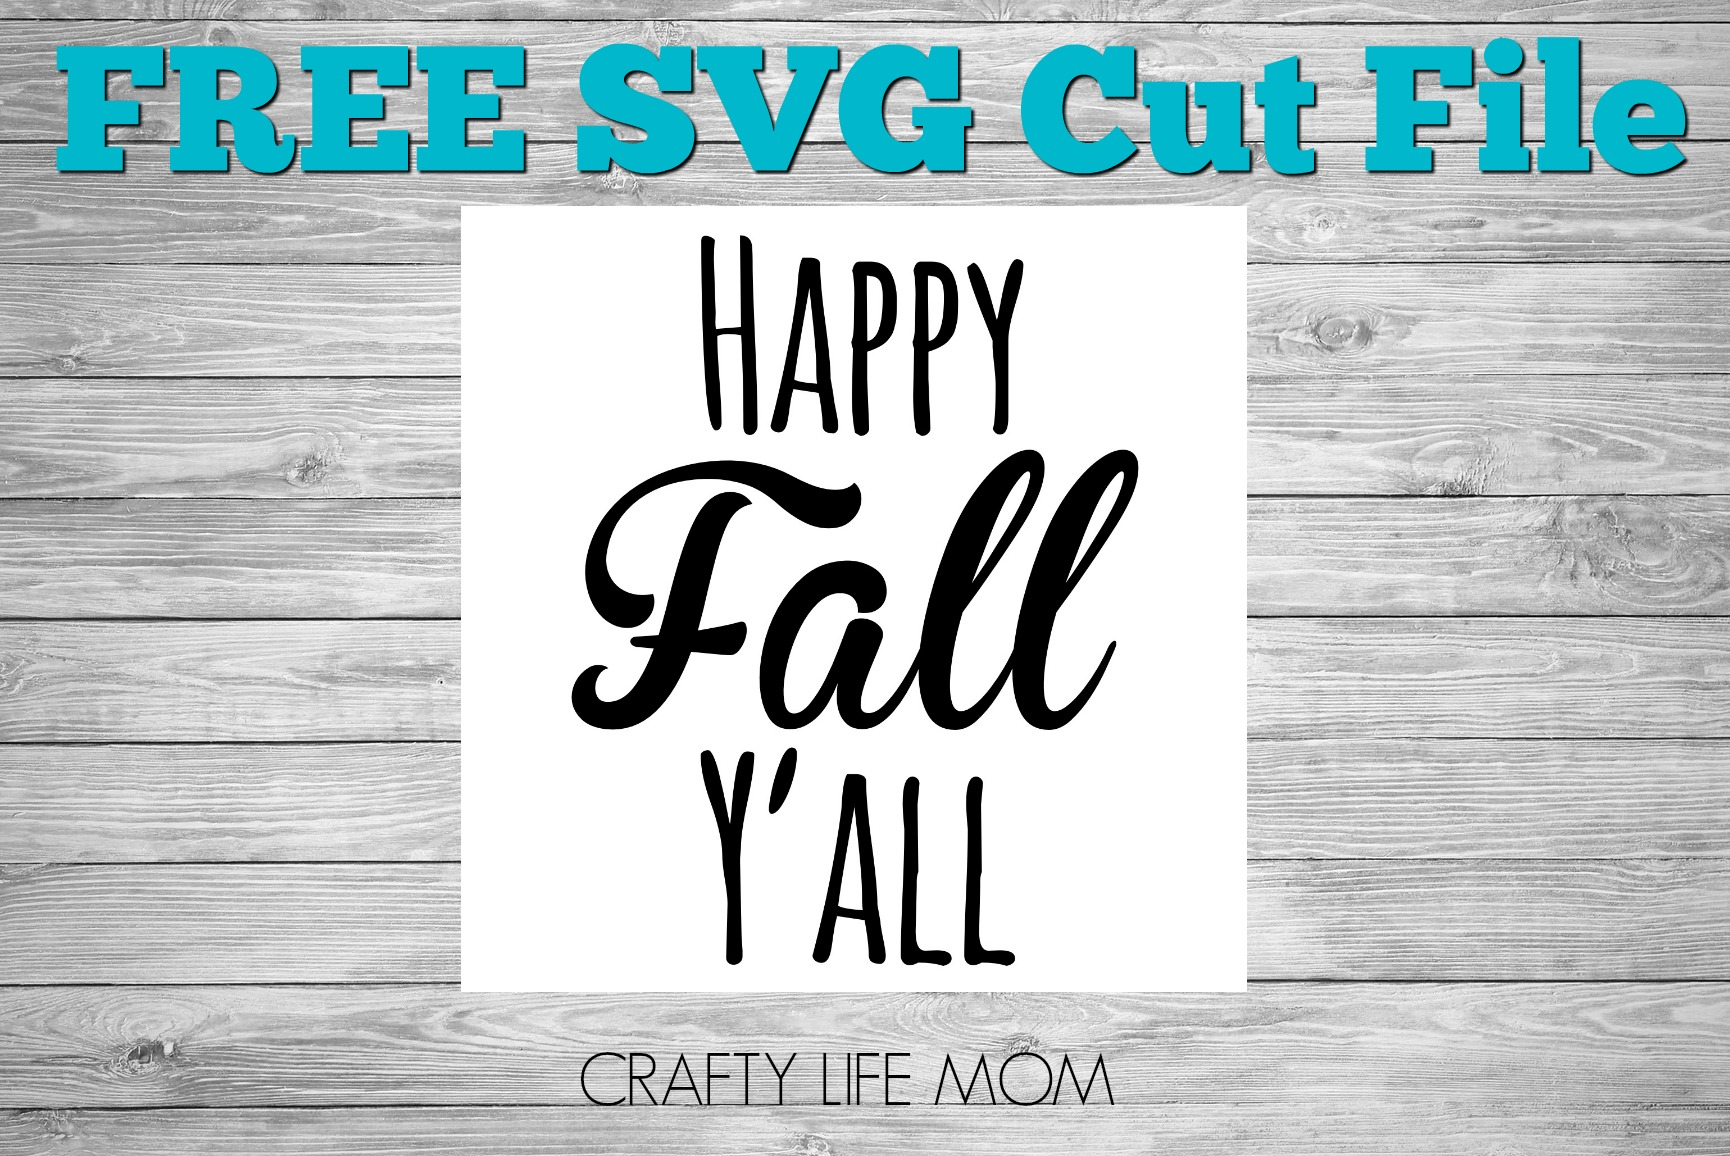 FREE SVG Cute File Happy Fall Yall